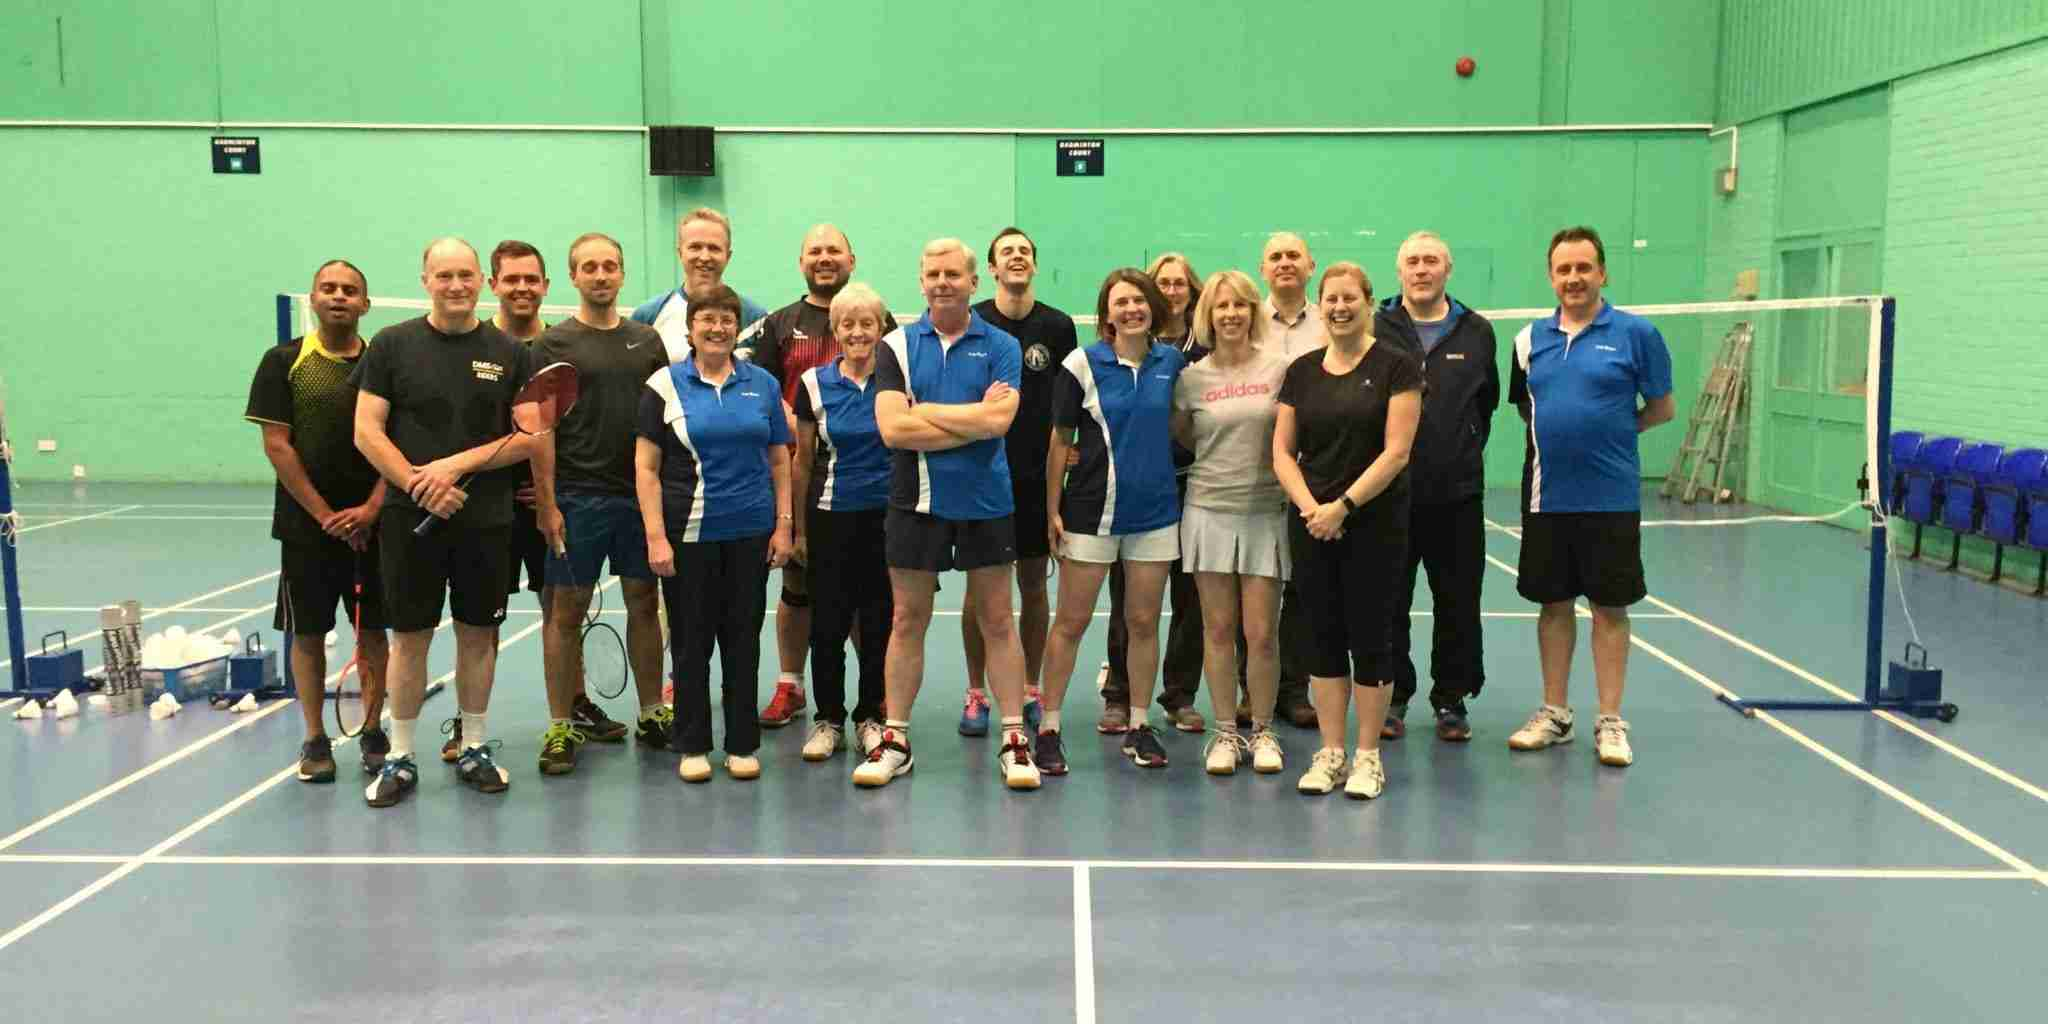 Beeston Badminton Club